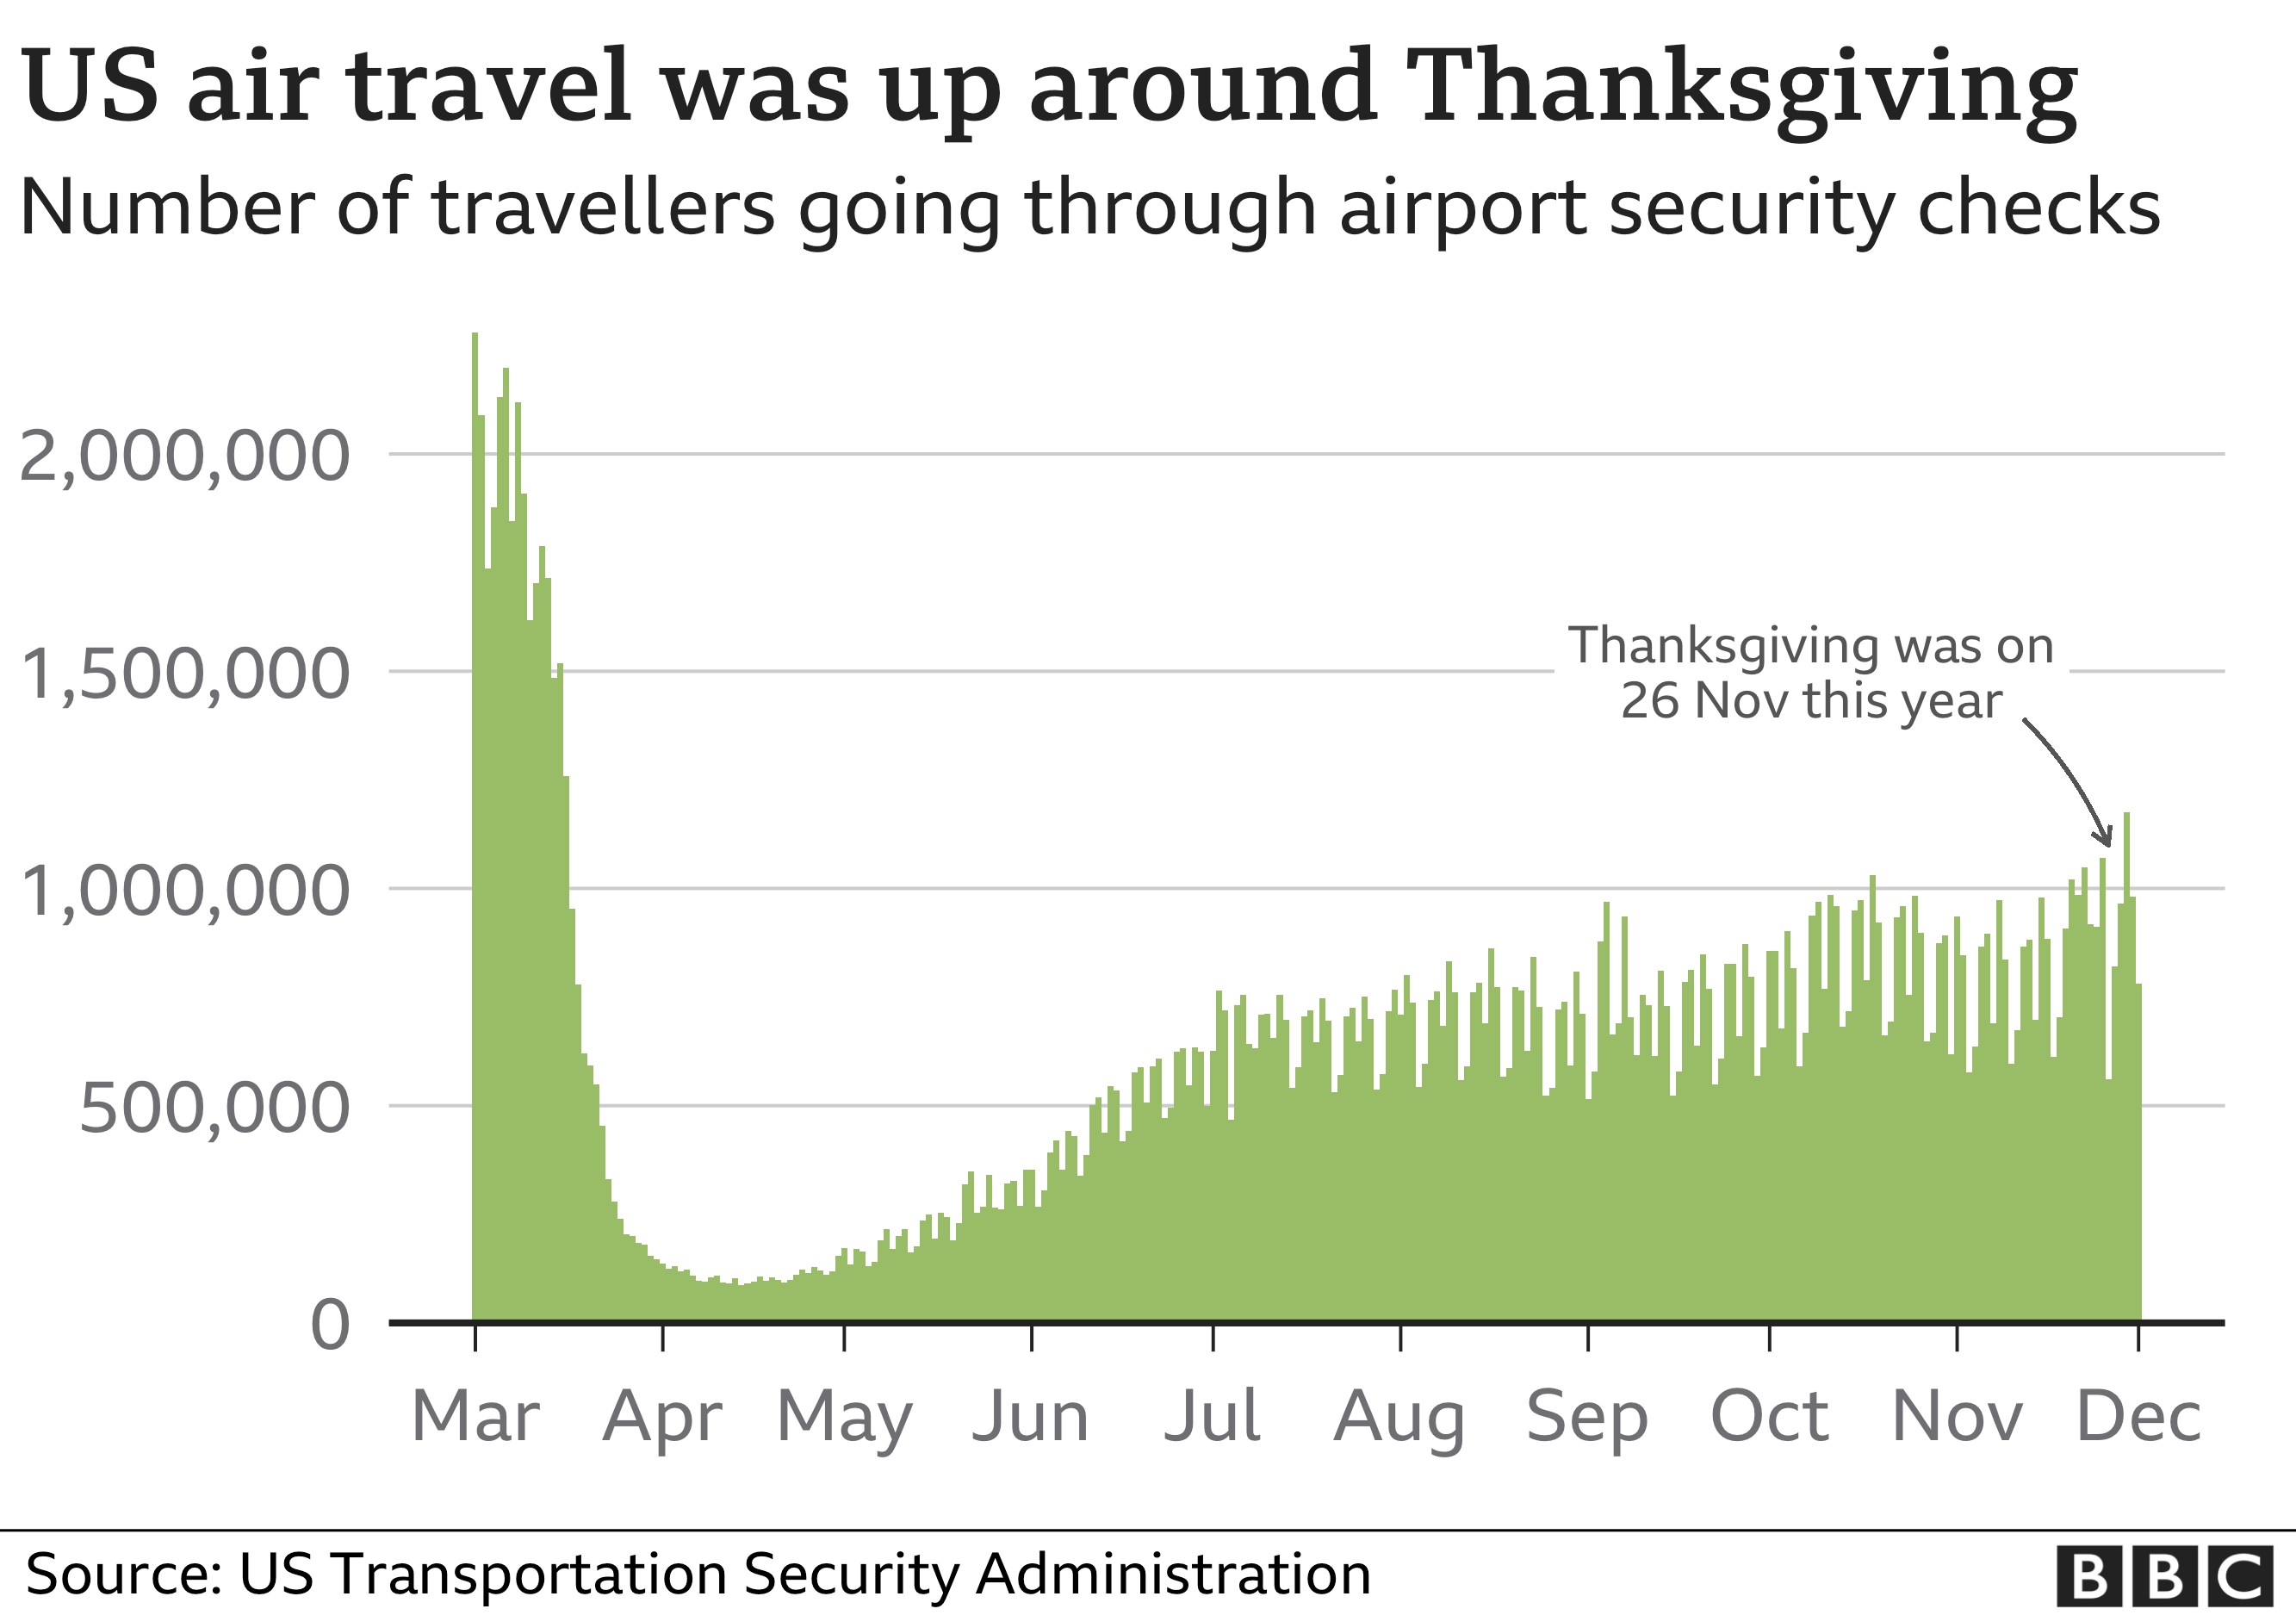 Chart of air travel patterns in the USA